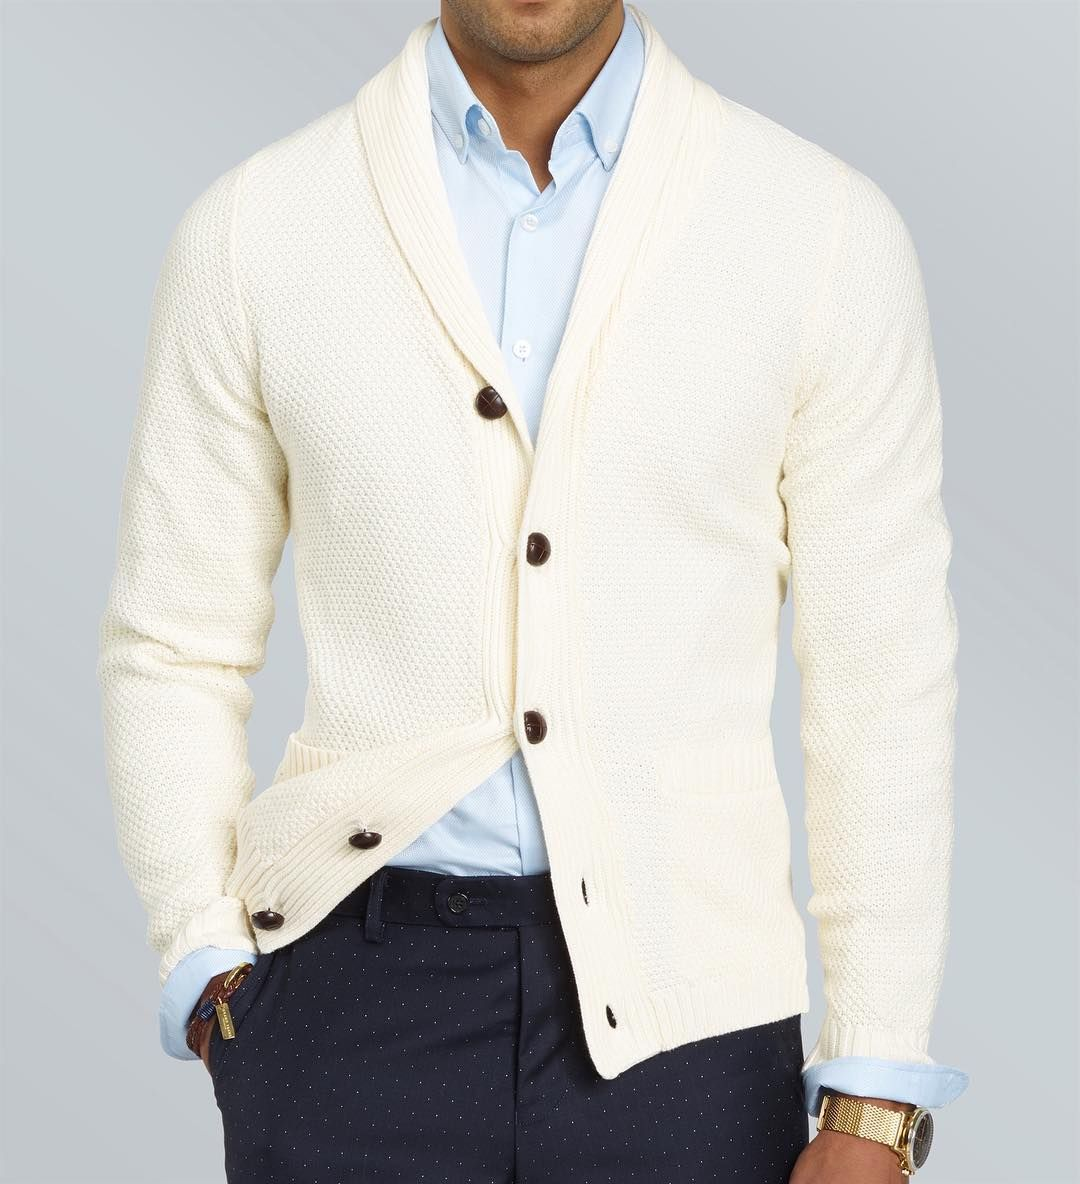 Simple, comfortable and elegant - the Ivory shawl collar cardigan ...